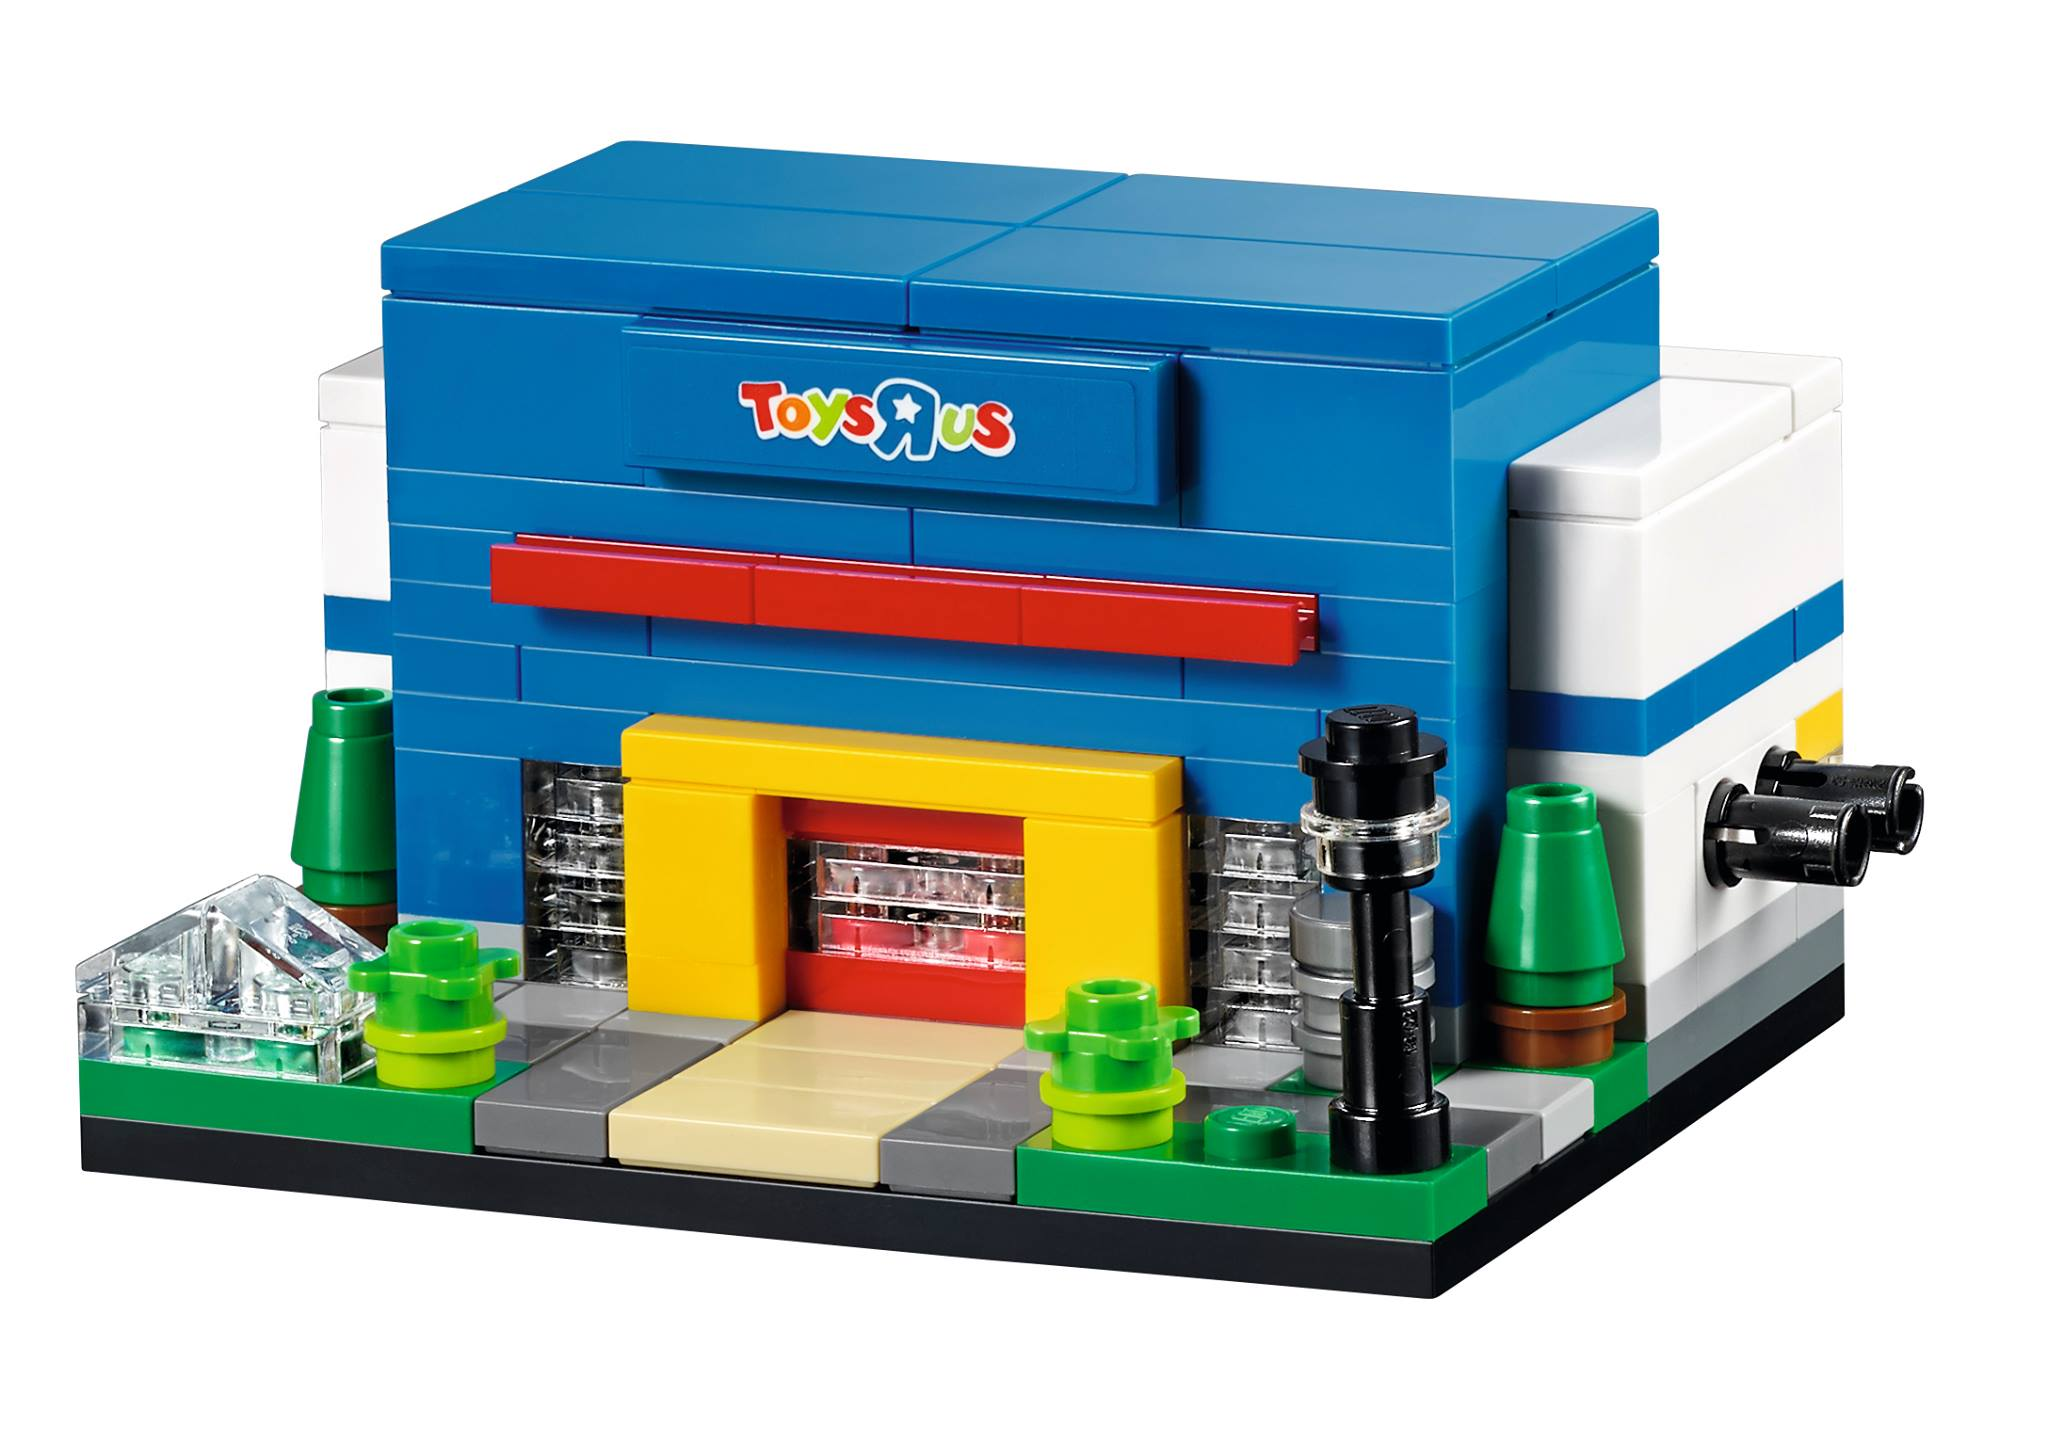 toys r us chairs for sale ebay lego bricktober 2015 sets revealed mini modular buildings